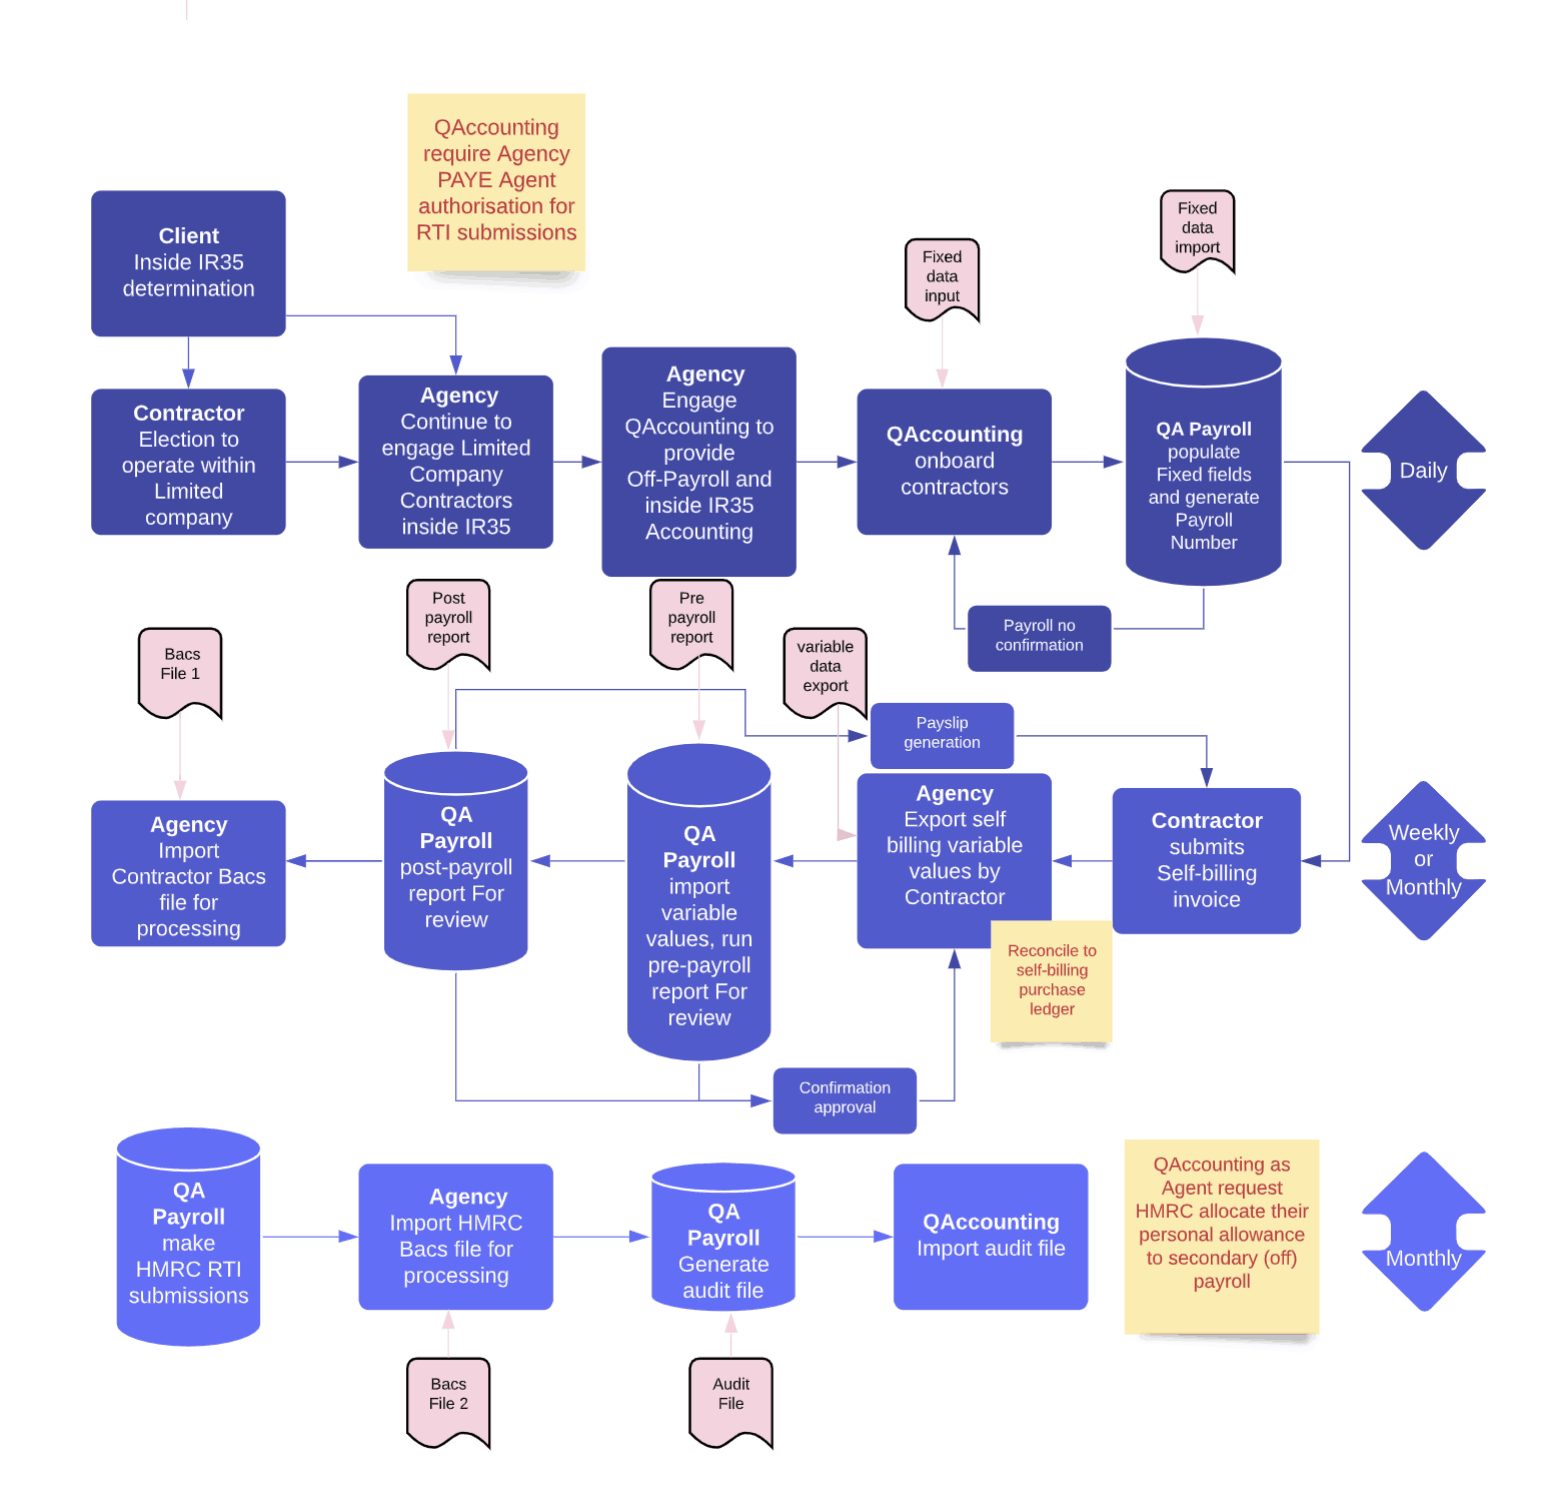 Off-Payroll Solution for agencies process in flowchart